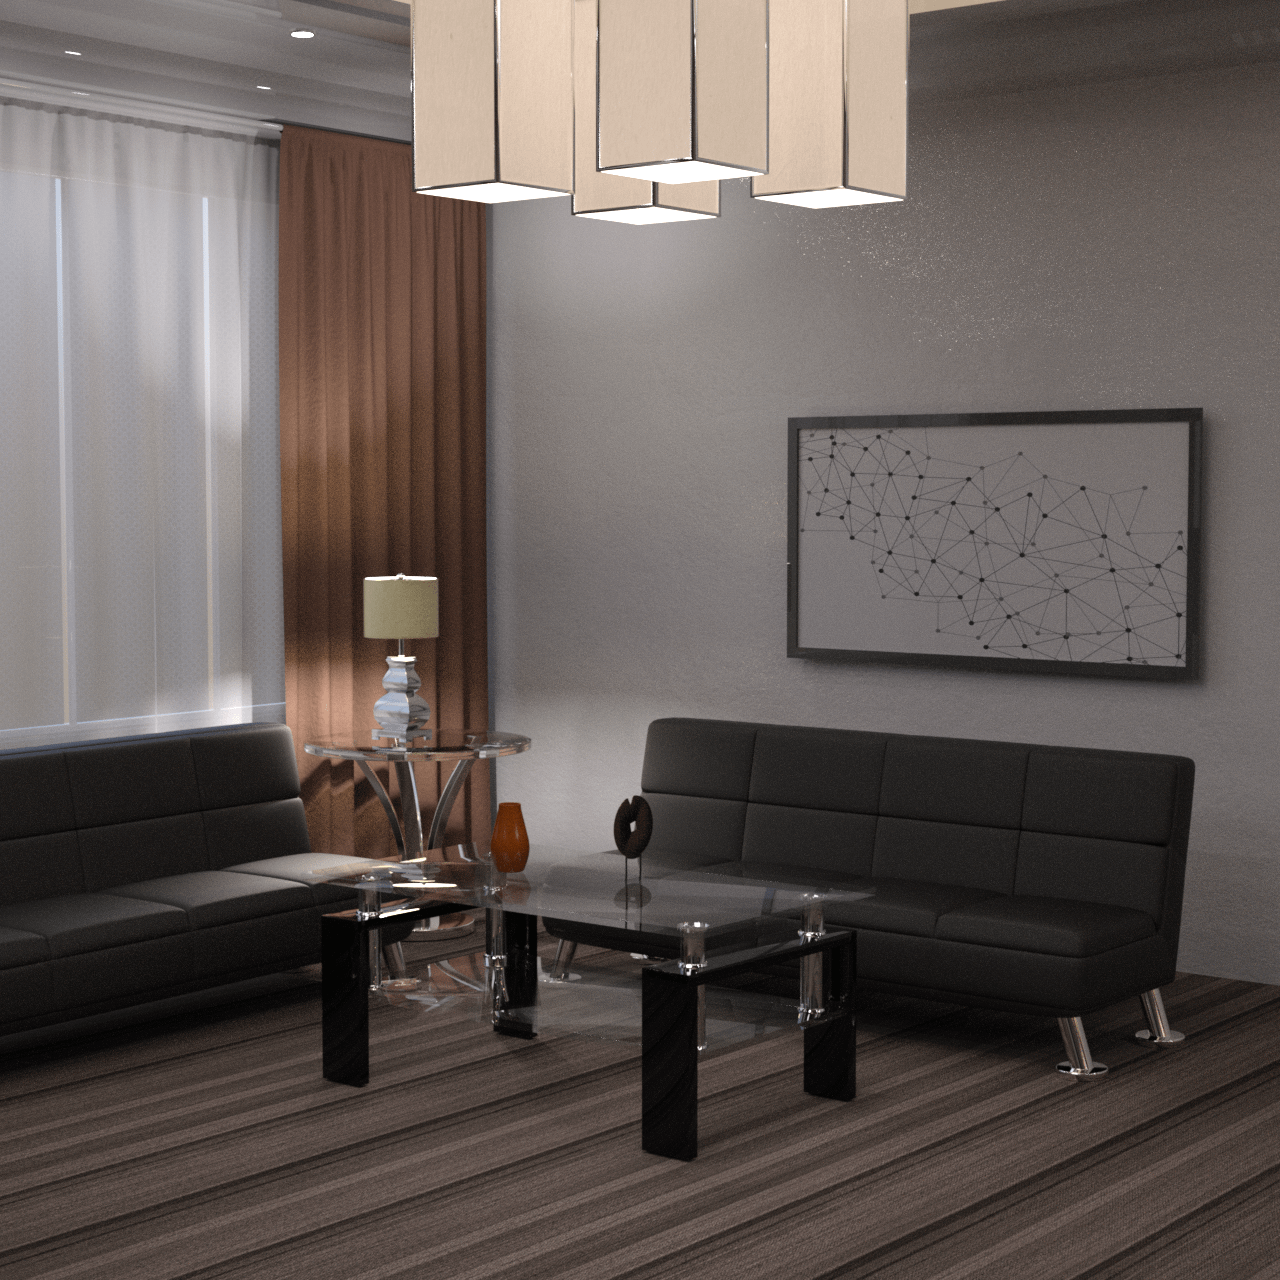 Waiting area with furniture 3d models